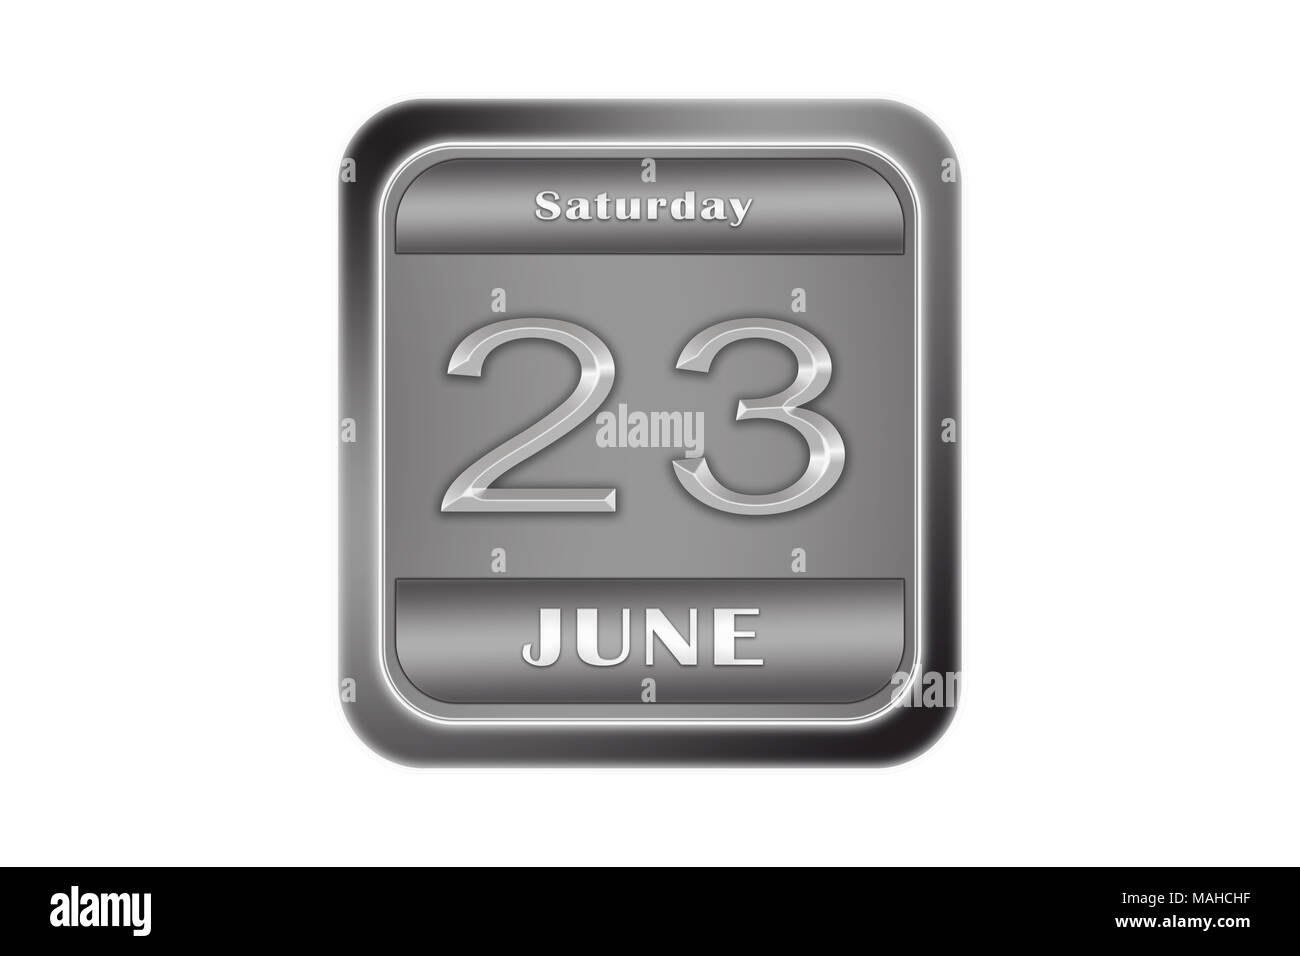 Date 23 June, Saturday written on a metal plate - Stock Image